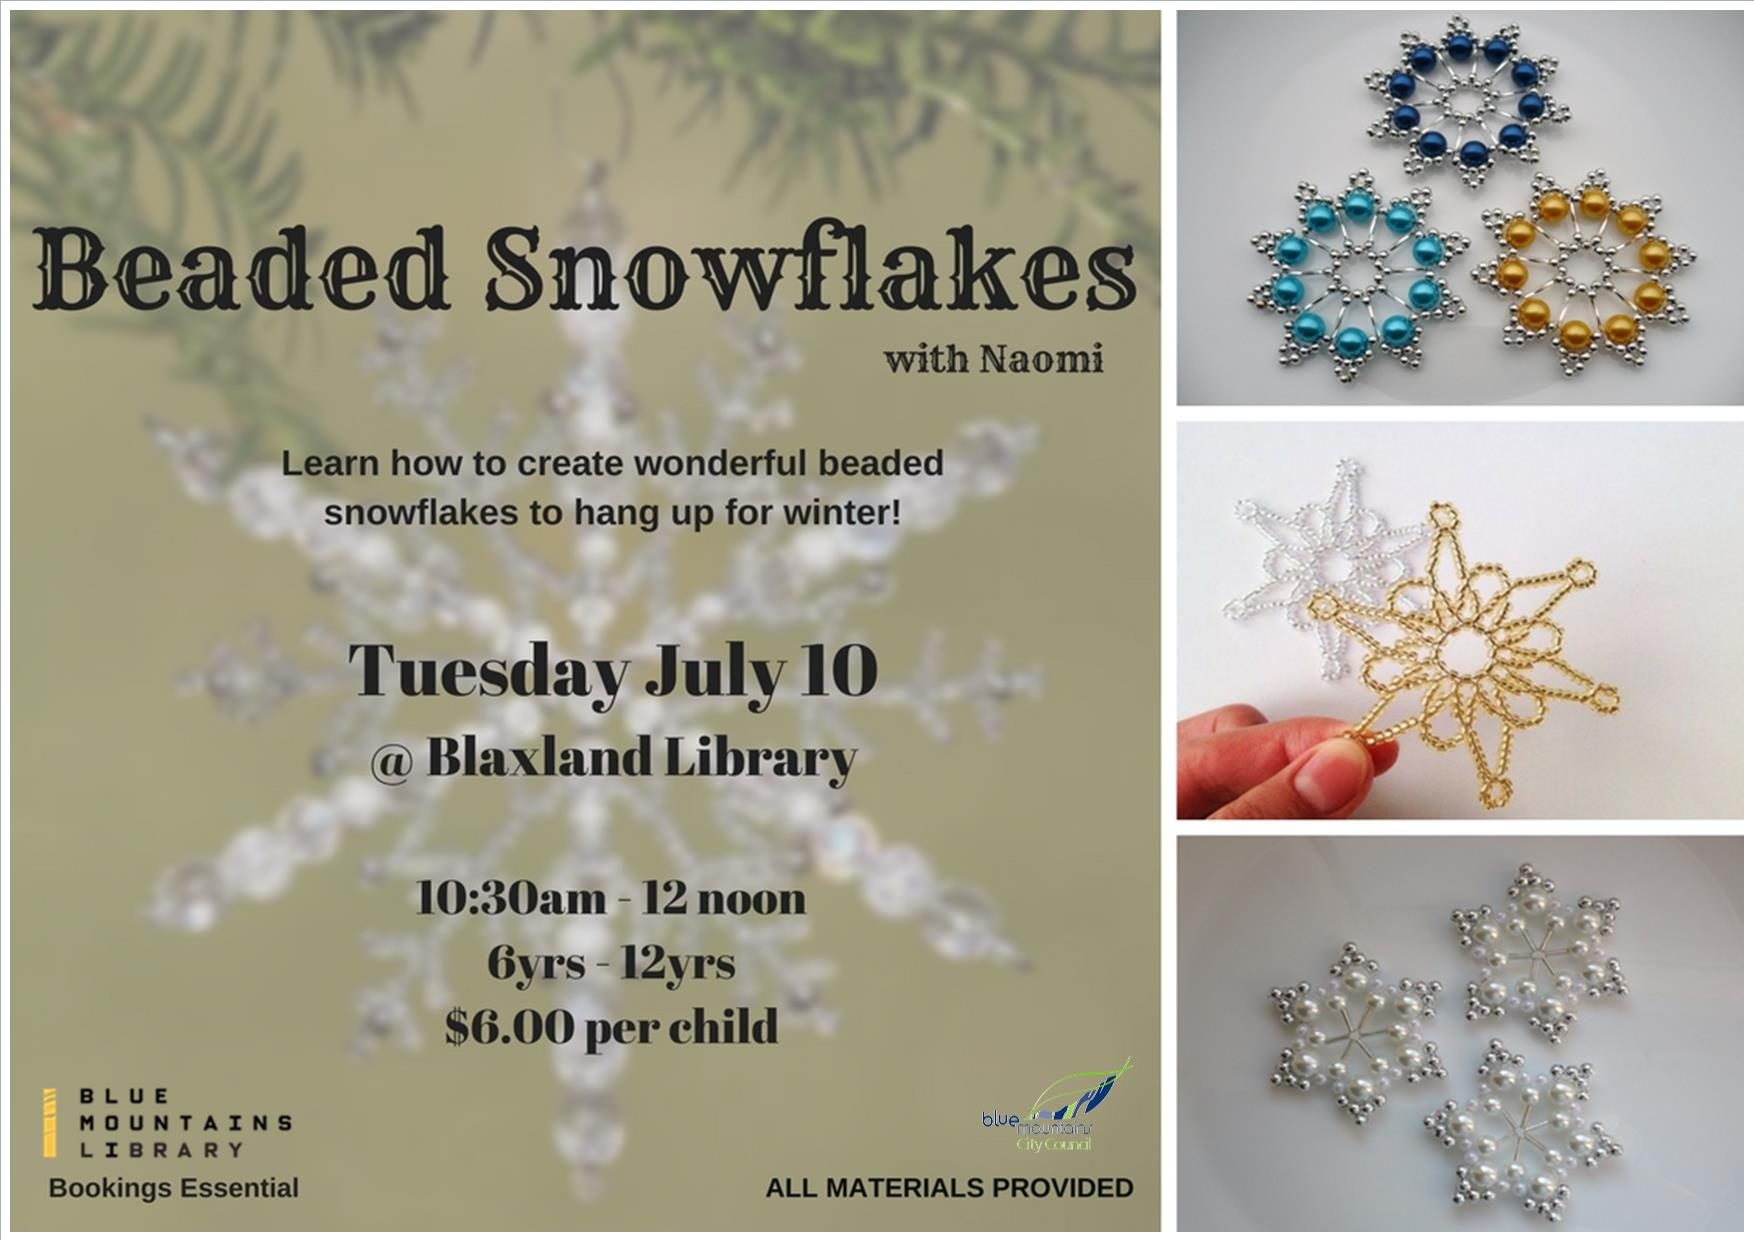 Beaded Snowflakes, Blaxland Library, Tuesday 10th July, 10:30-12noon, 6-12 year olds, $6 per child